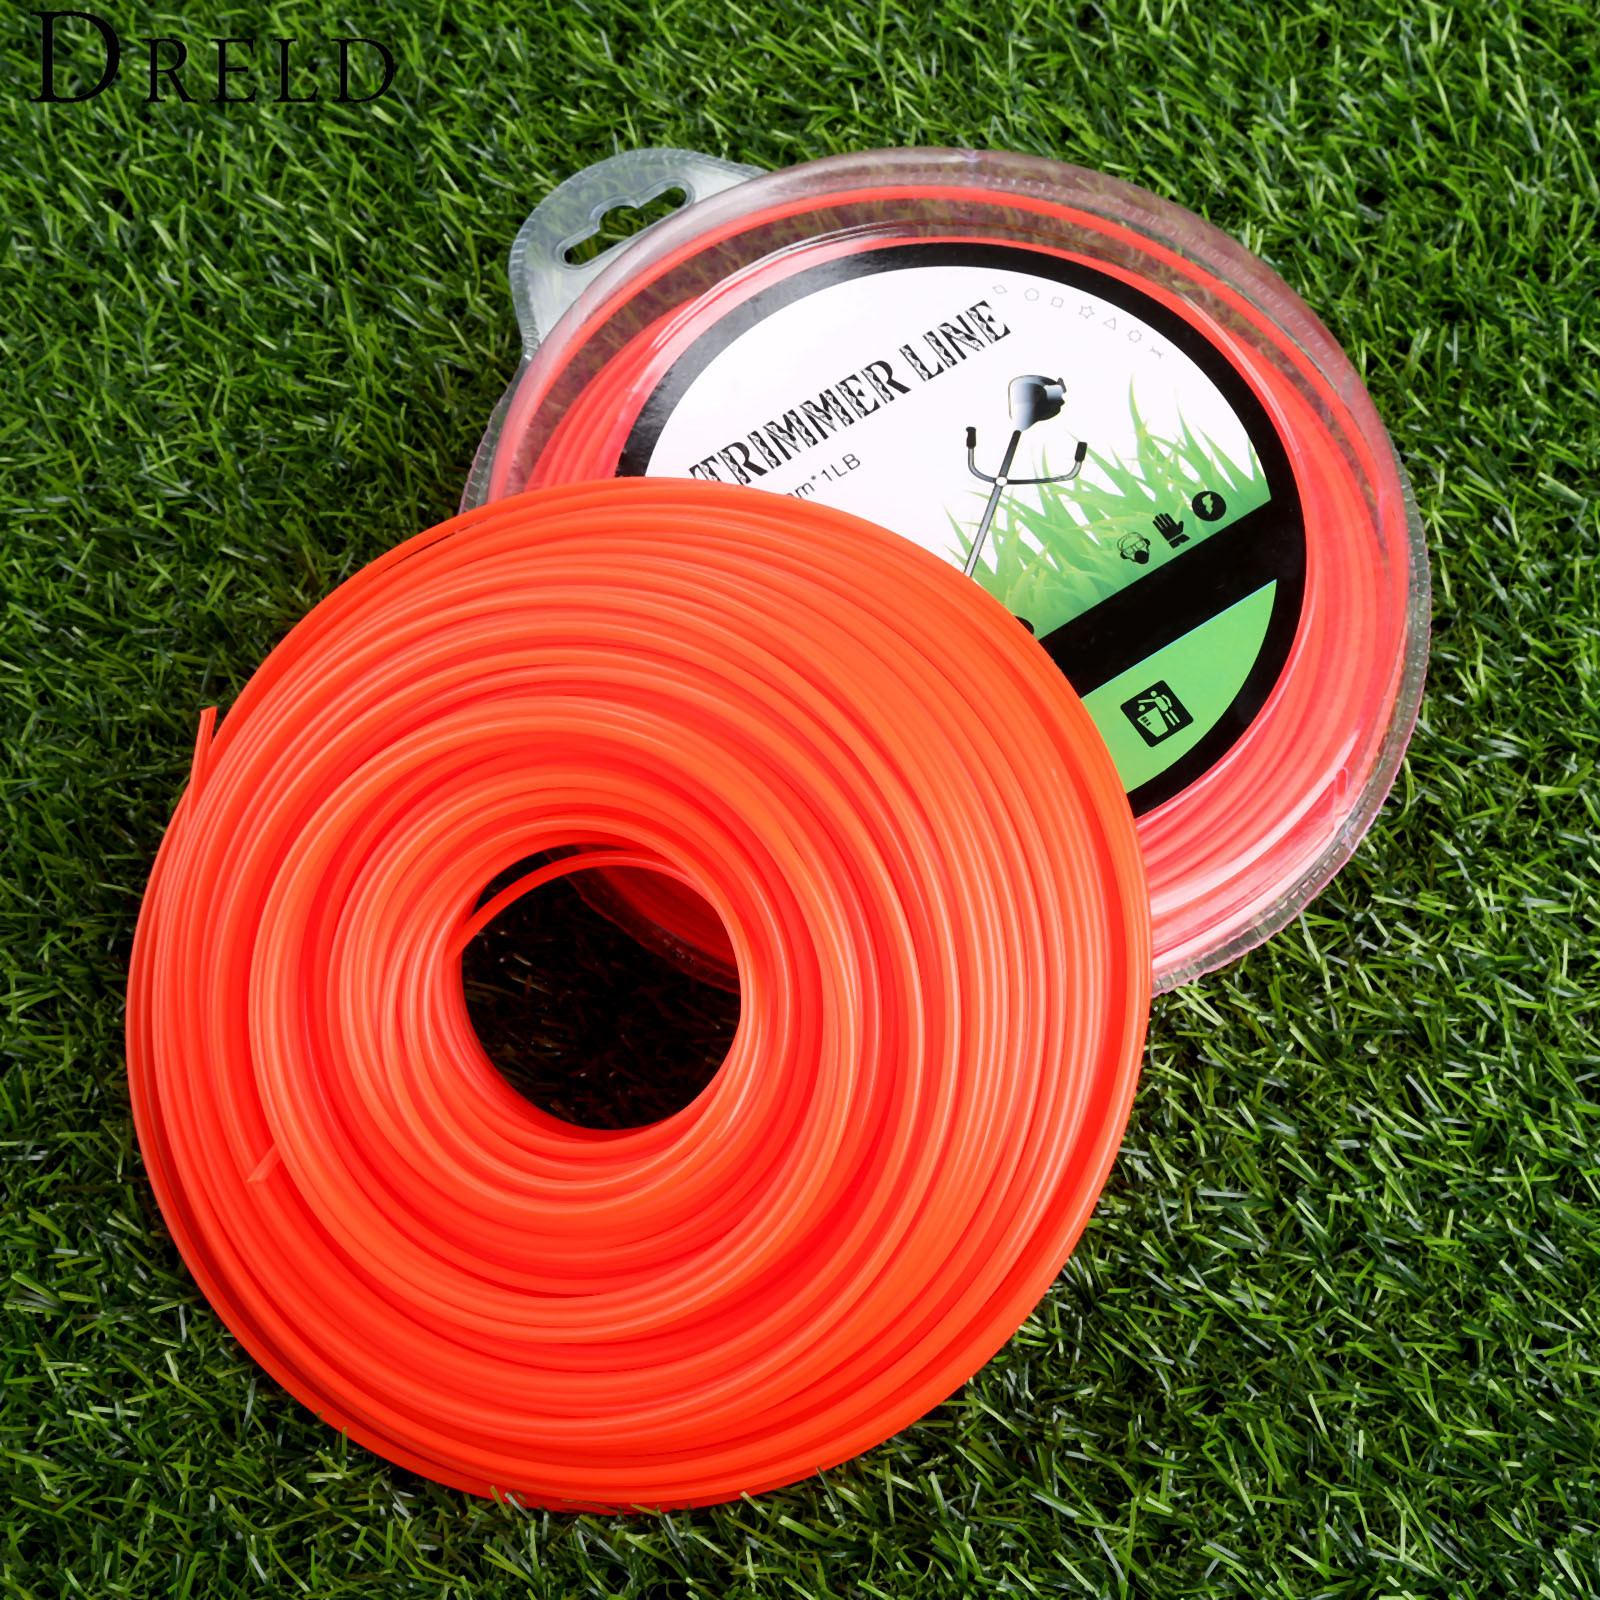 DRELD 2.4mm 1LB Trimmer Line Brush Cutter Spare Parts Nylon Cord Wire String Grass Strimmer Line Garden Tool For Lawn Mower gx25 gx35 stroke brush cutter trimmer lawn mower diaphragm carburetor garden tool parts